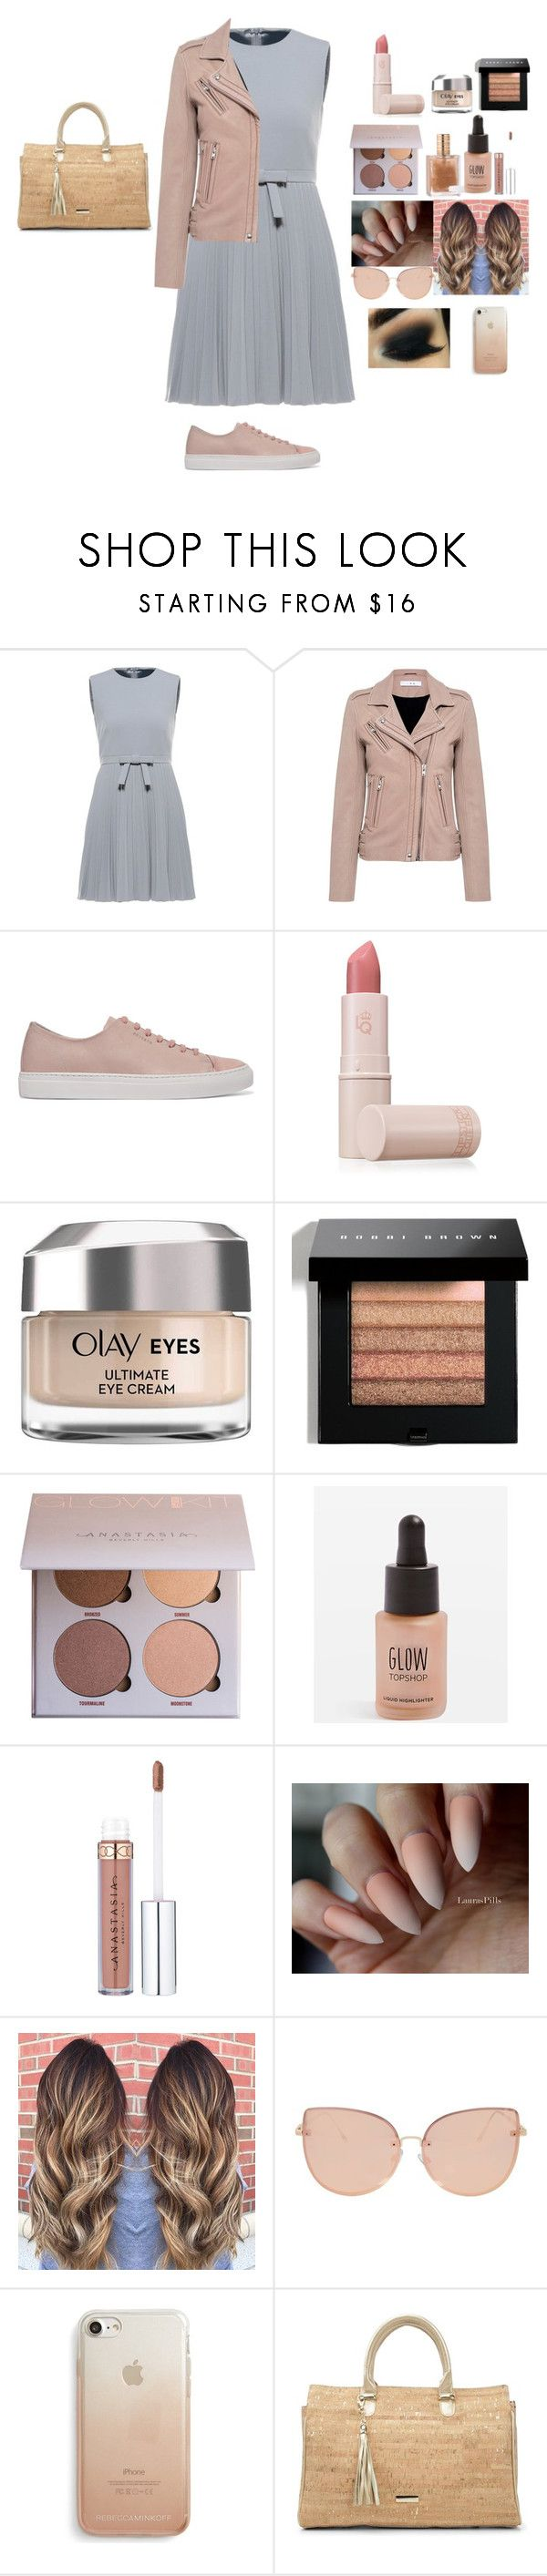 """Bez naslova #505"" by melisa-44 ❤ liked on Polyvore featuring RED Valentino, IRO, Axel Arigato, Lipstick Queen, Olay, Bobbi Brown Cosmetics, Topshop, Rebecca Minkoff, Donald J Pliner and men's fashion"